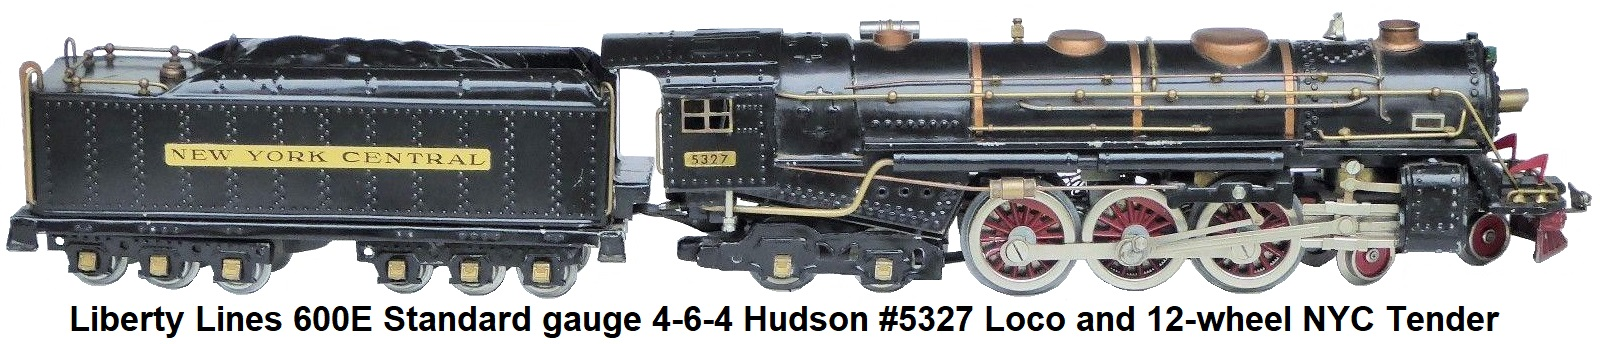 Liberty Lines Standard gauge 600E NYC 4-6-4 Hudson #5327 locomotive and 12-wheel tender in black with red spoked drivers